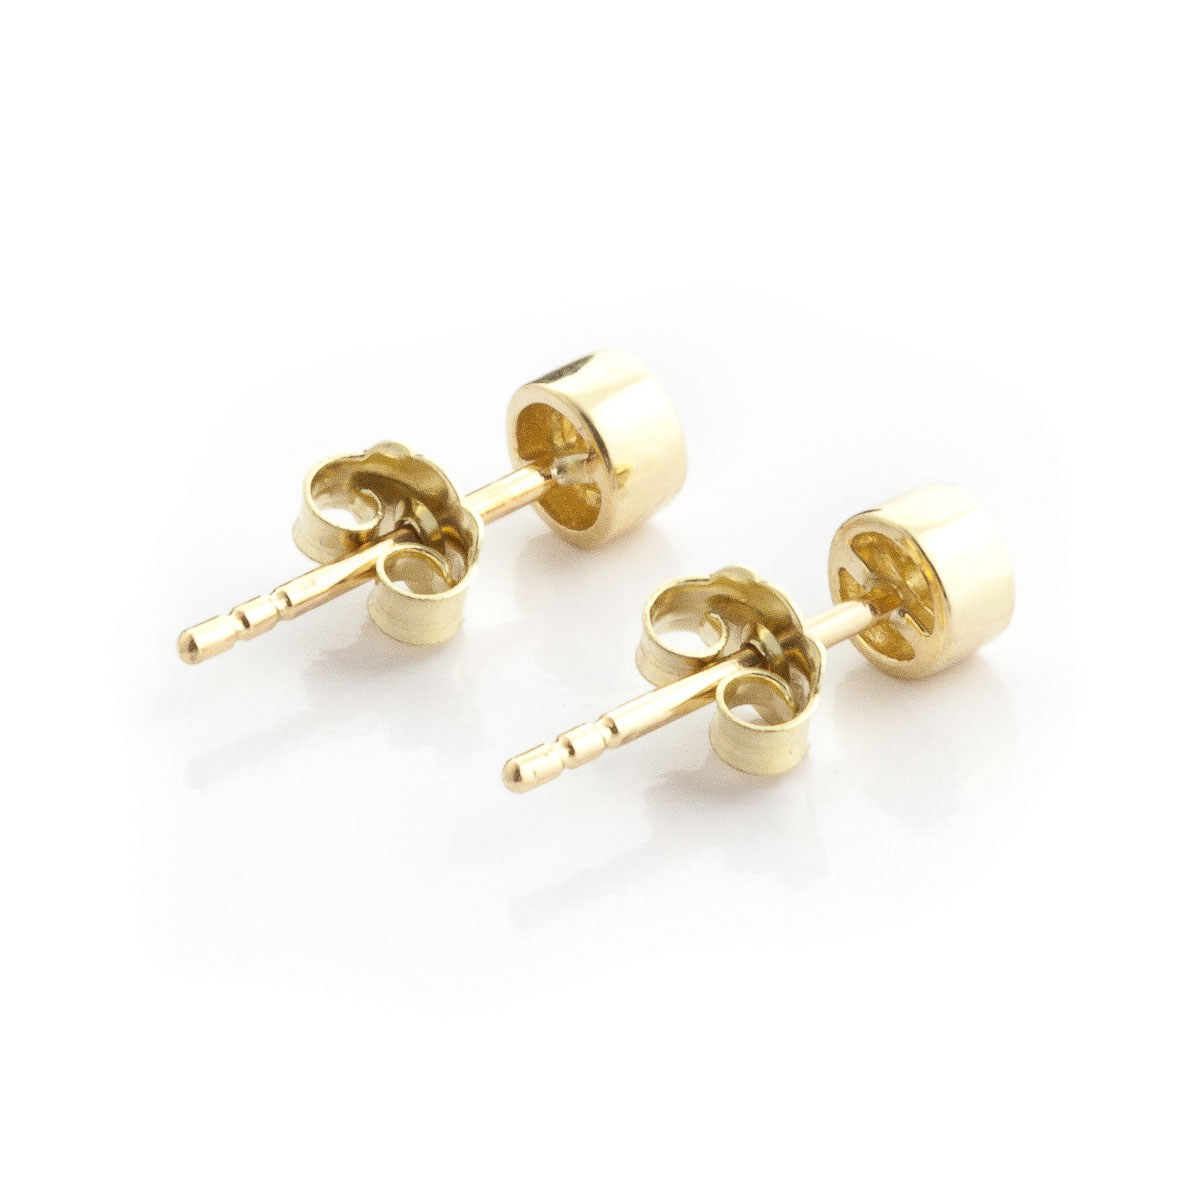 Diamond Stud Earrings 0.03 ctw in 9ct Gold